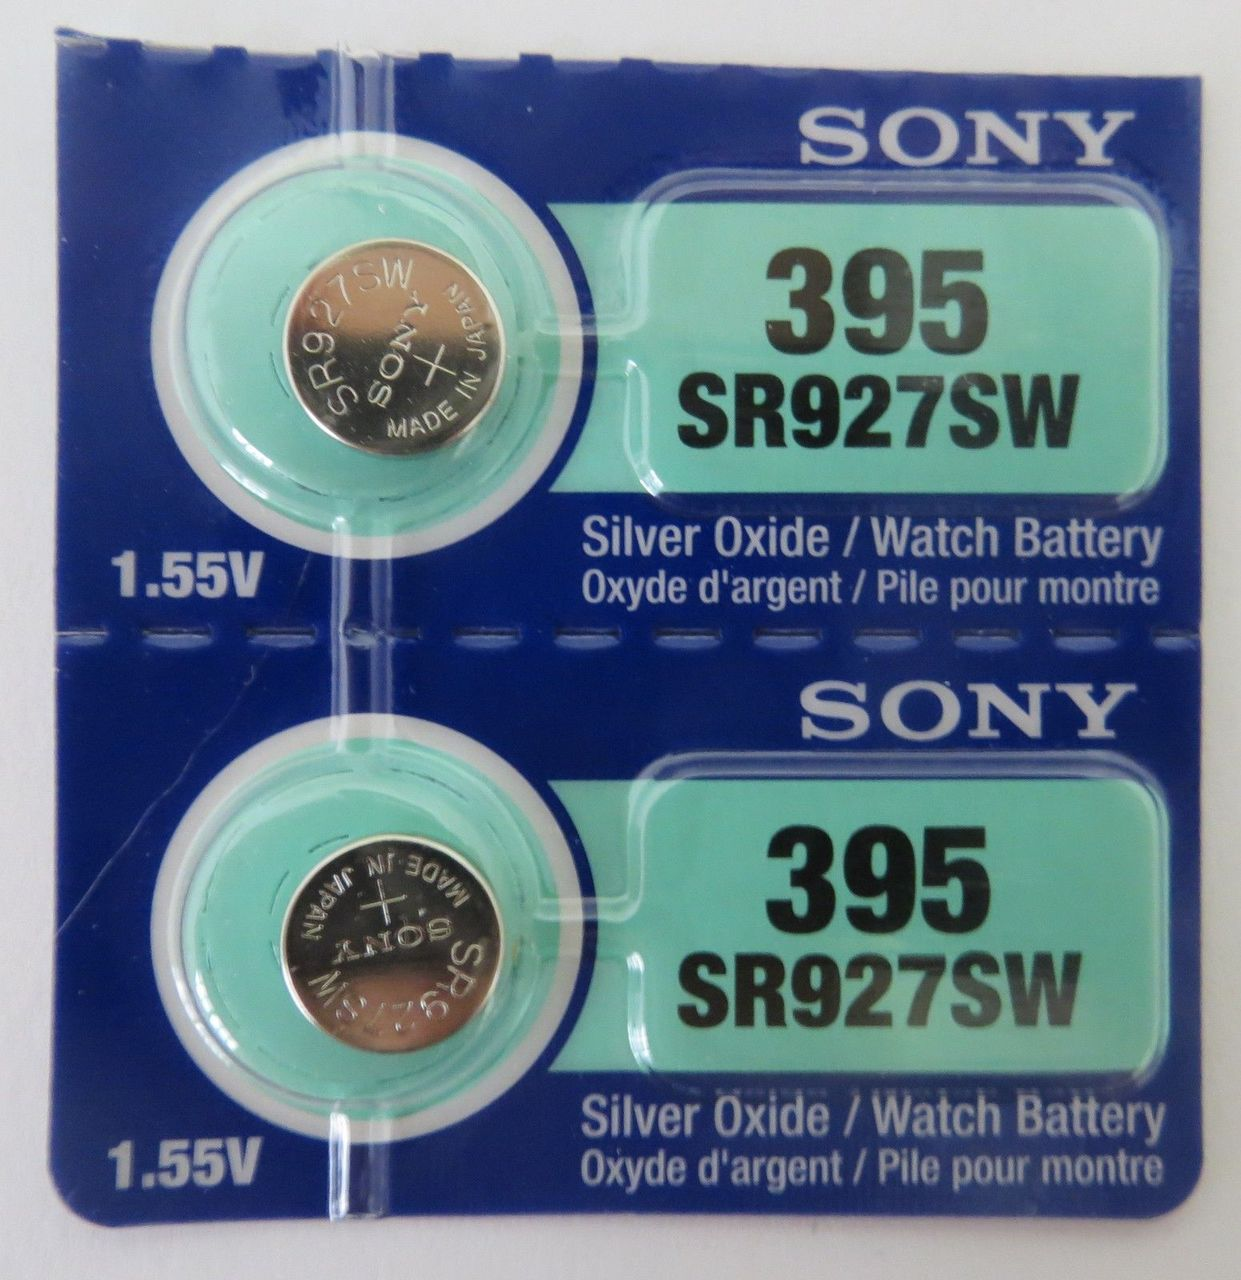 Sony 395/399 - SR927 Silver Oxide Button Battery 1.55V - 2 Pack + FREE SHIPPING!